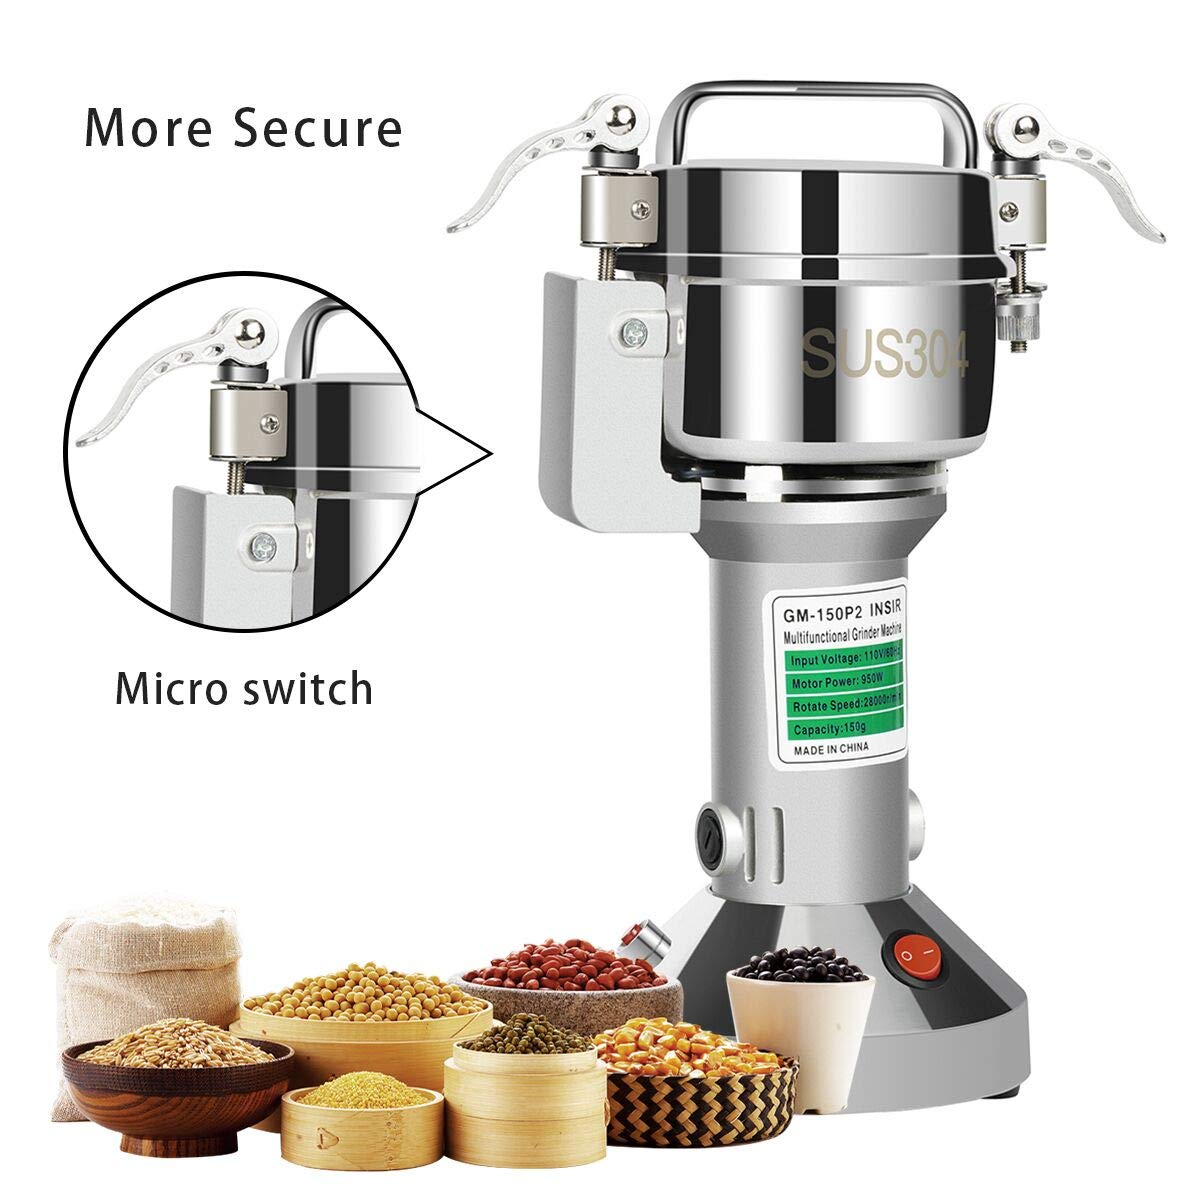 Insir Grain Grinder Mill Stainless Steel Electric High-speed Family Medicial Powder Machine Commercial Cereals Grain Mill Herb Grinder,Pulverizer 110v Gift for Mom, Wife (150G) by Insir